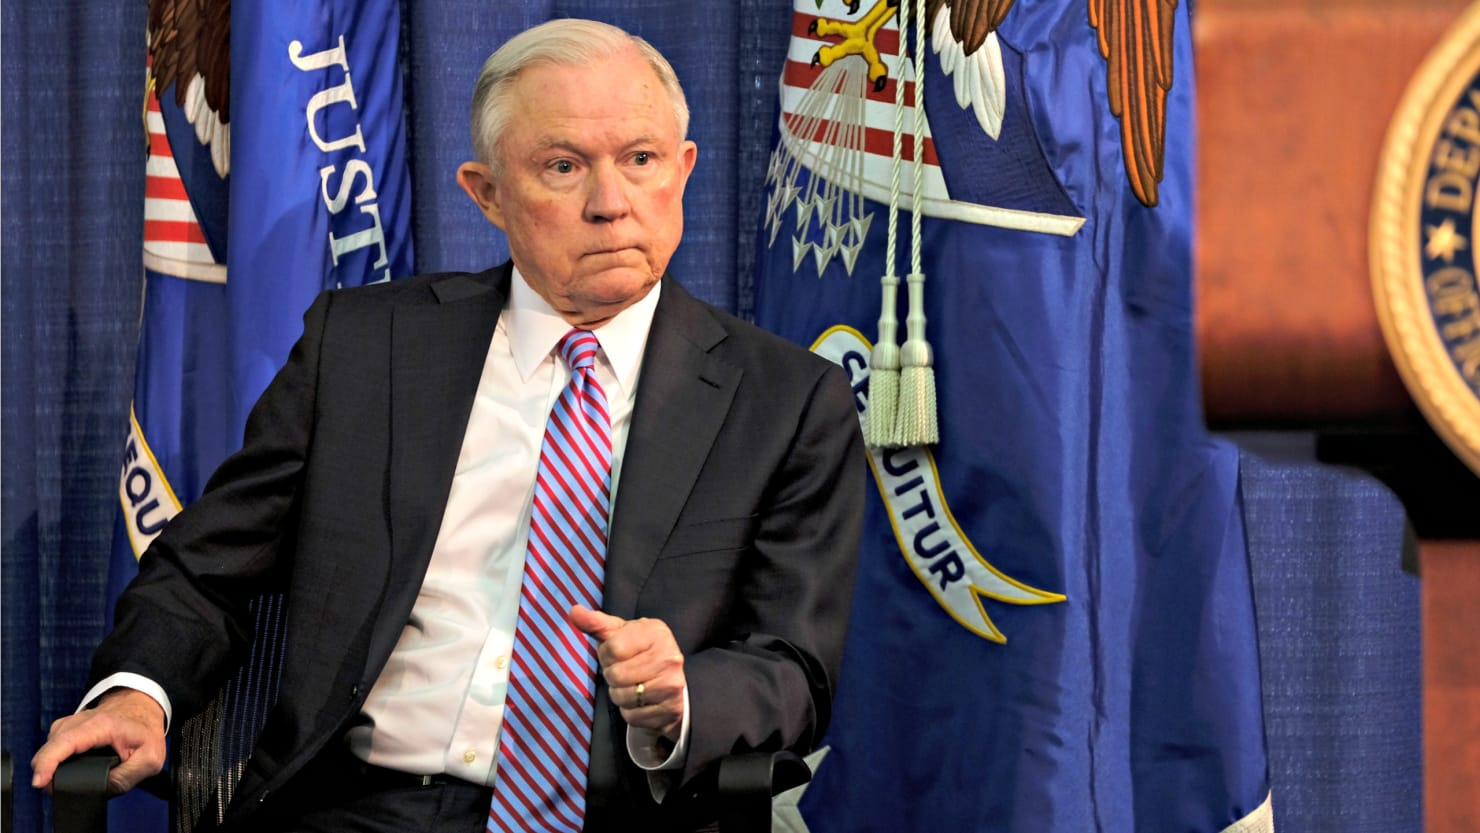 DOJ defies court order to release Jeff Sessions' Russian contacts https://t.co/DHilWa2aY5 https://t.co/wi148WhqWV